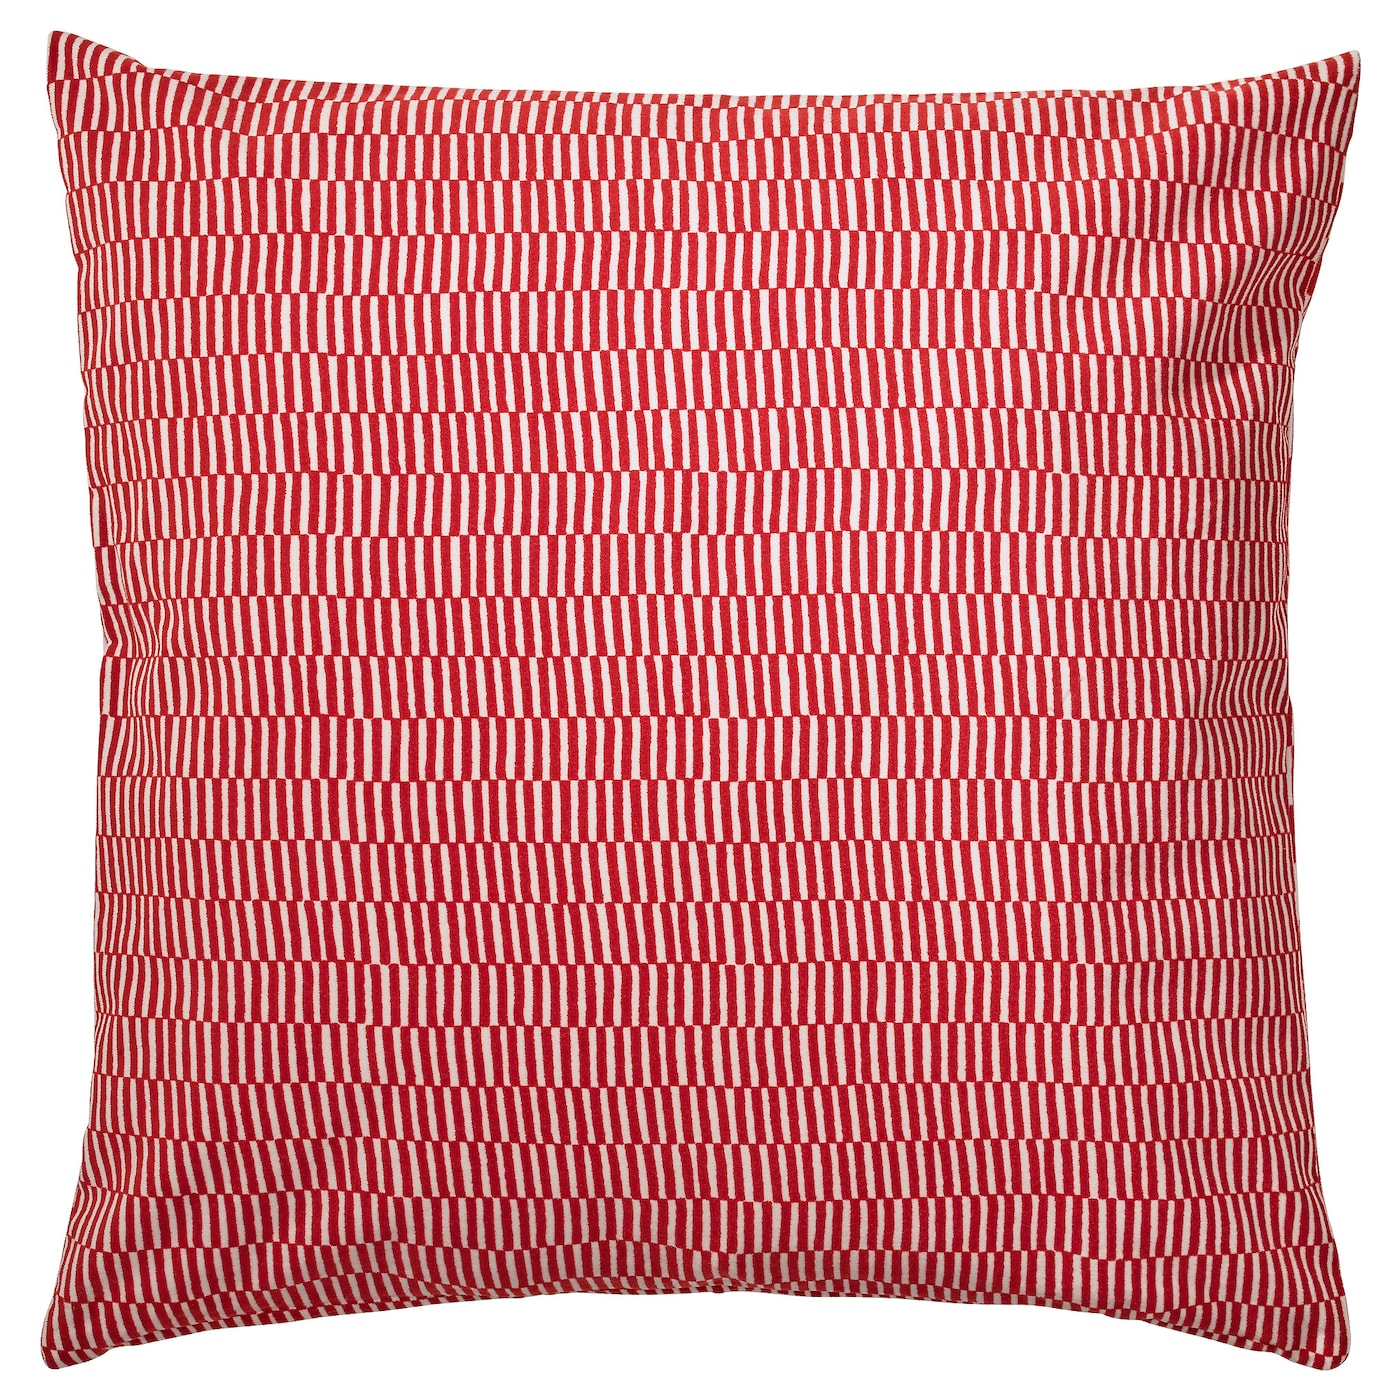 Cushions cushion pads ikea ikea stockholm 2017 cushion cotton velvet gives depth to the colour and softness to the touch gumiabroncs